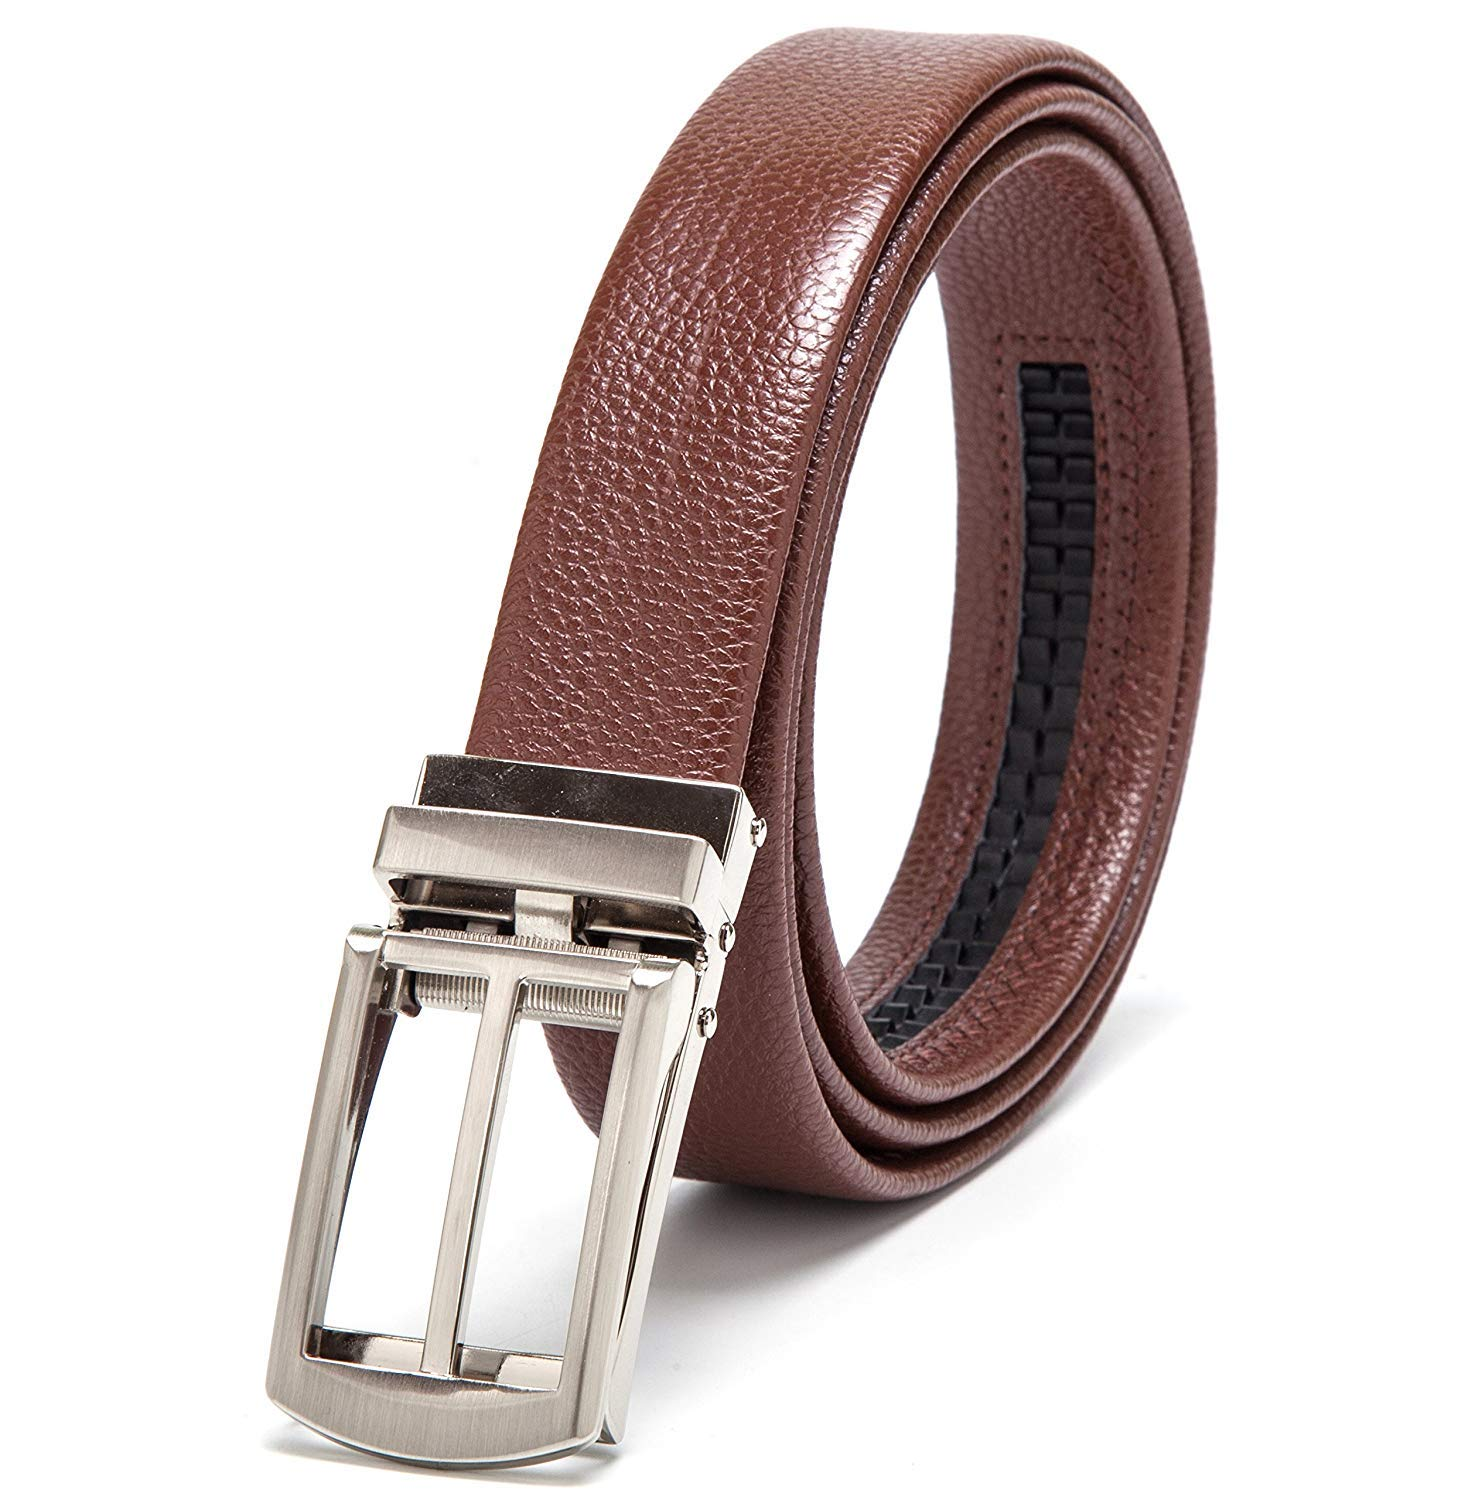 Popular Ratchet Belt for Men with Genuine Leather black Apply to Jeans and jeans Waist in inches 20 to 40